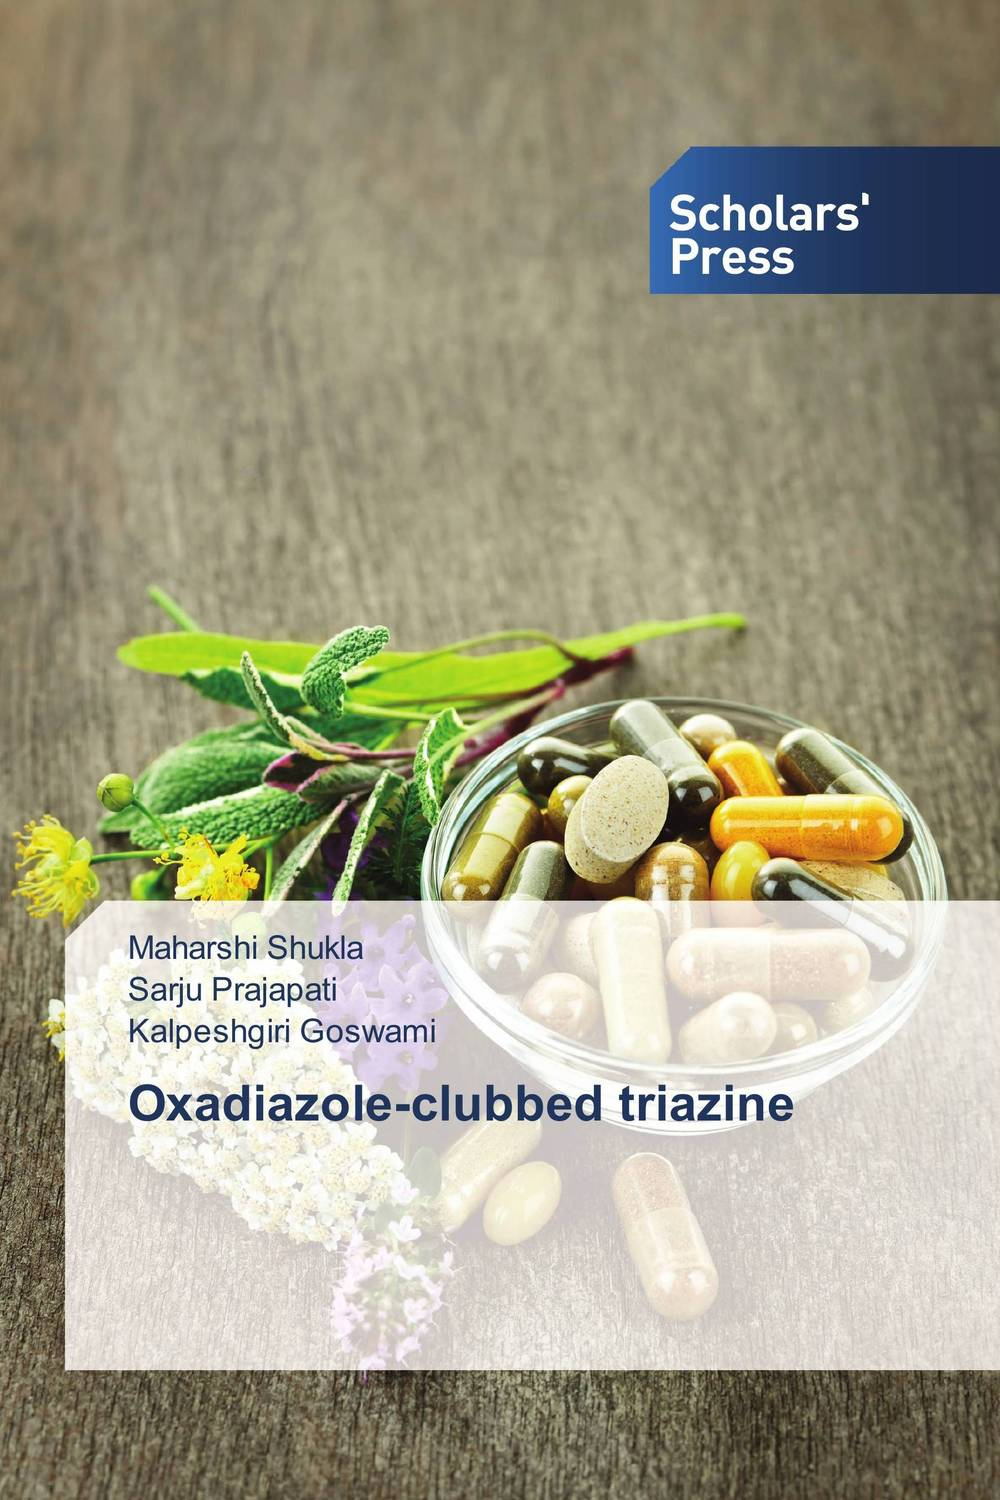 Oxadiazole-clubbed triazine drug discovery and design